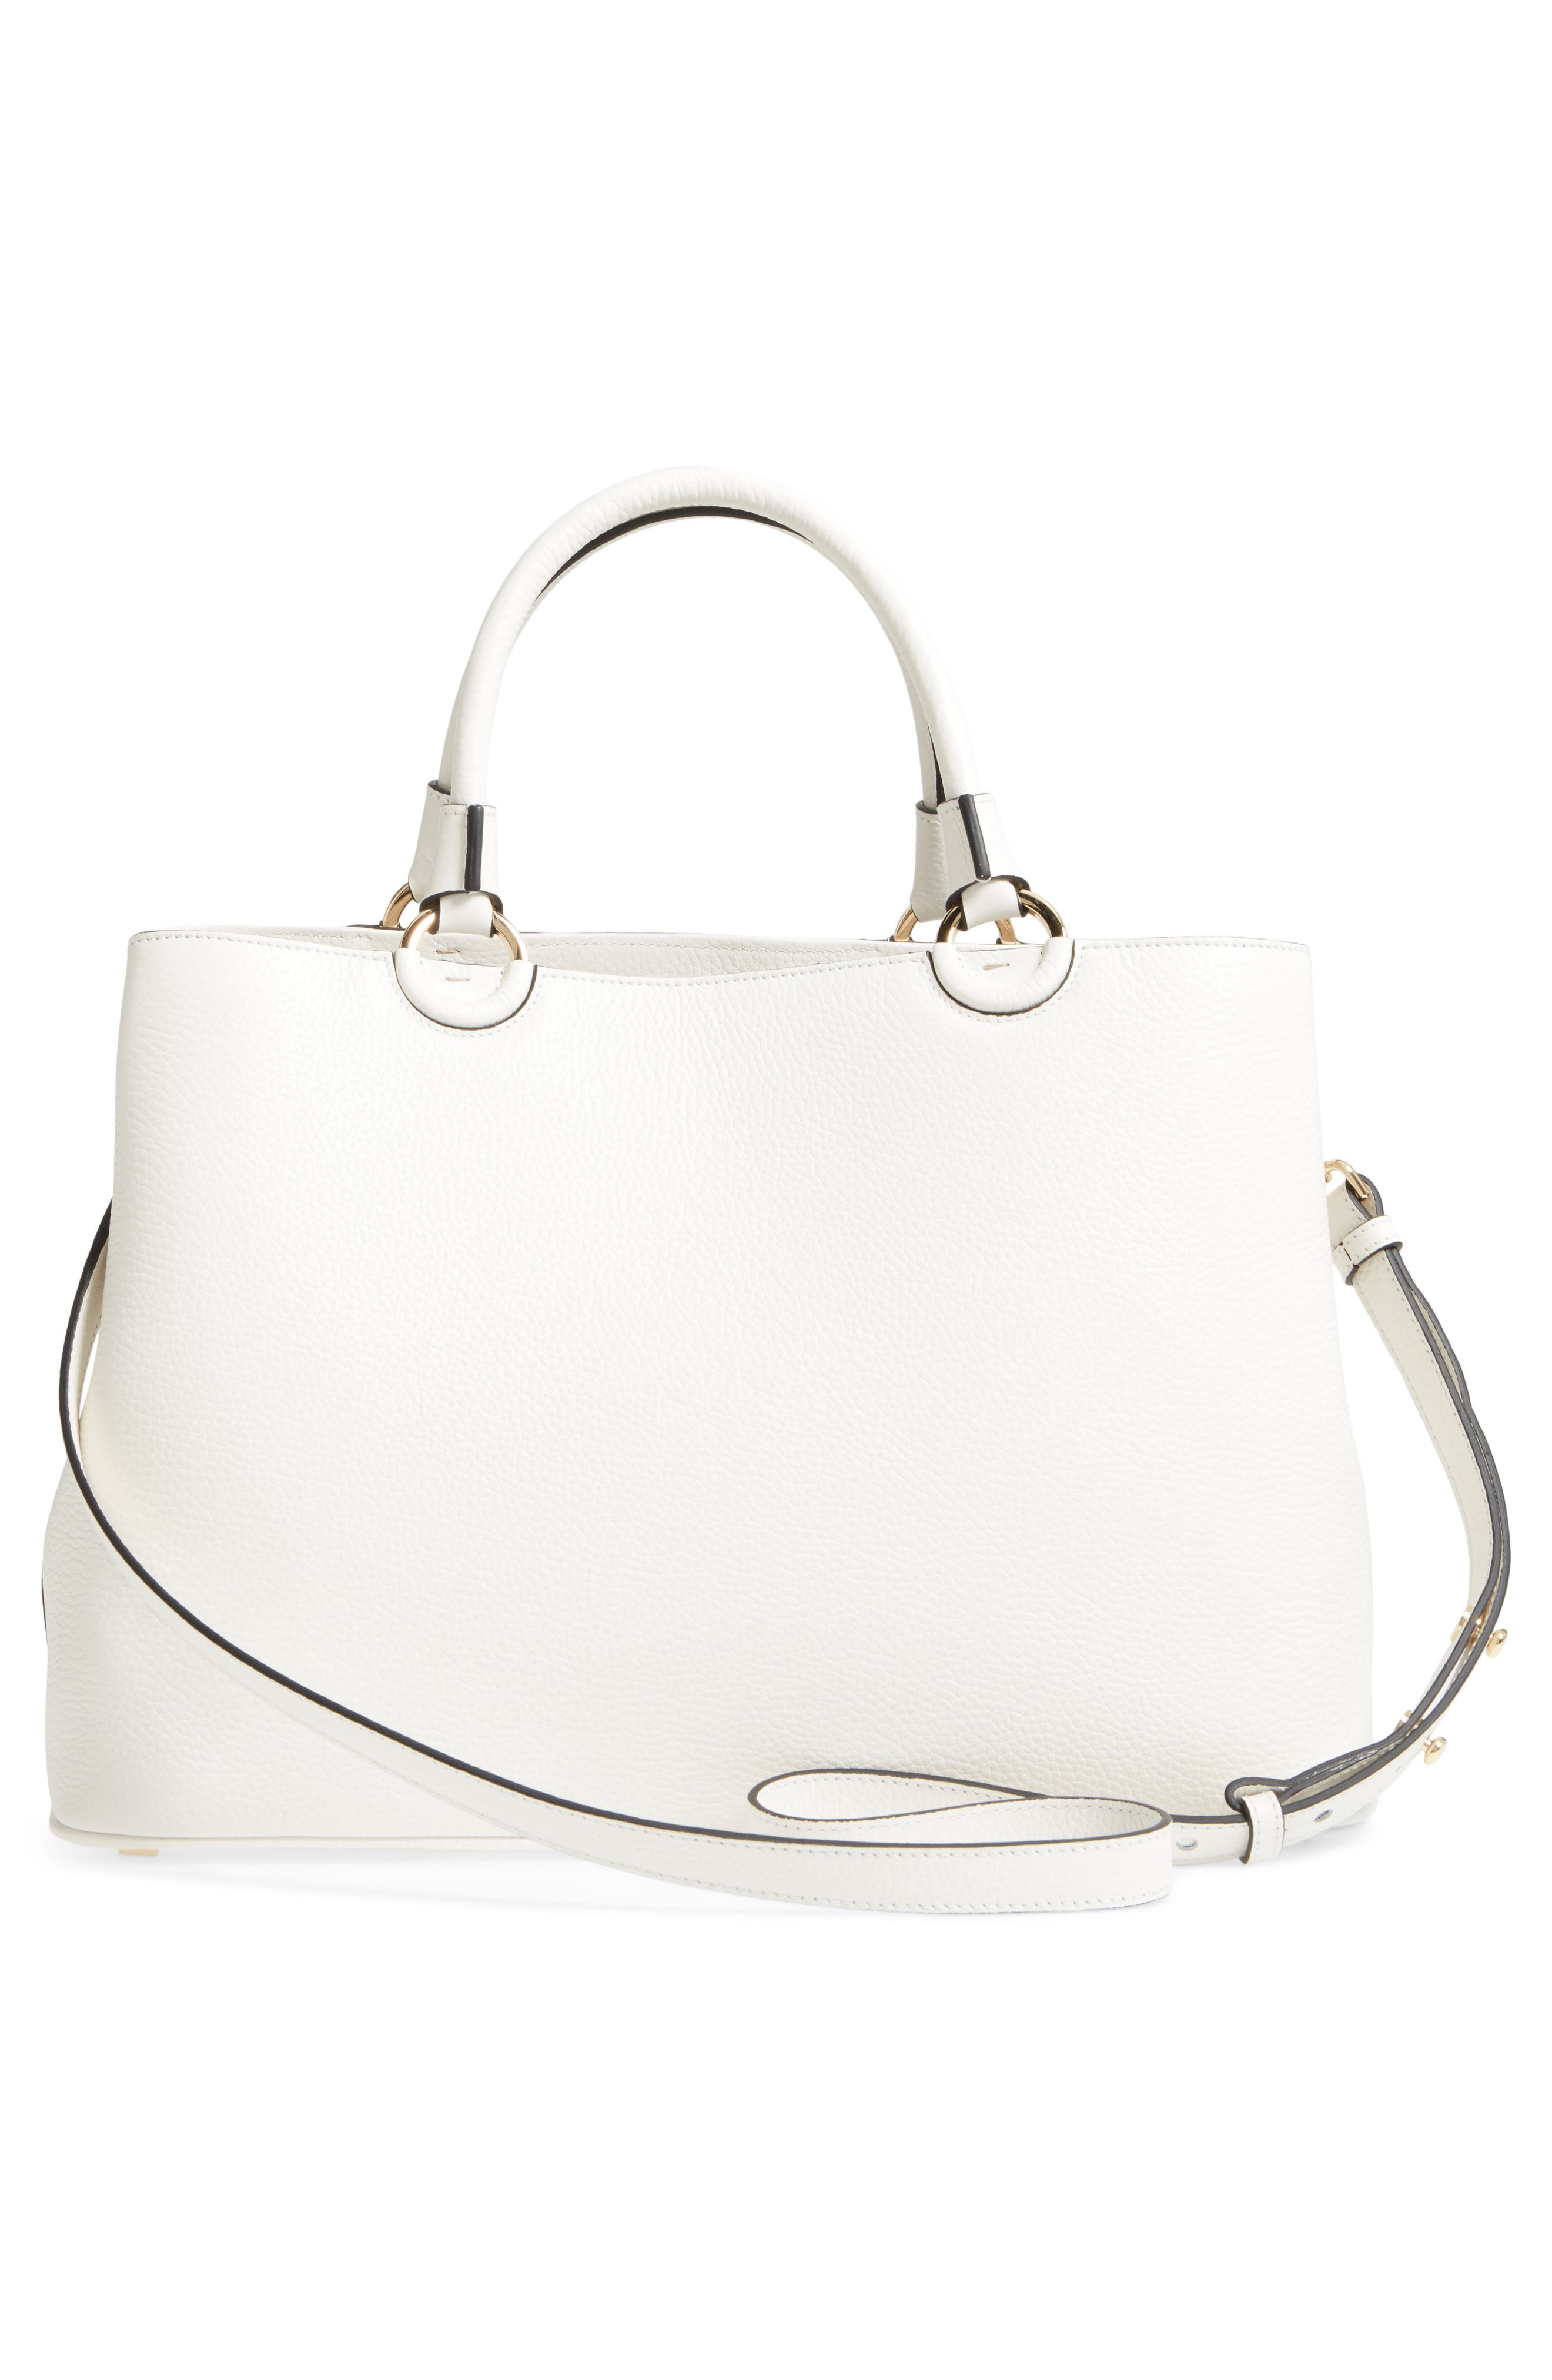 Veronica Cachemire Leather Tote,                             Alternate thumbnail 3, color,                             New Milk